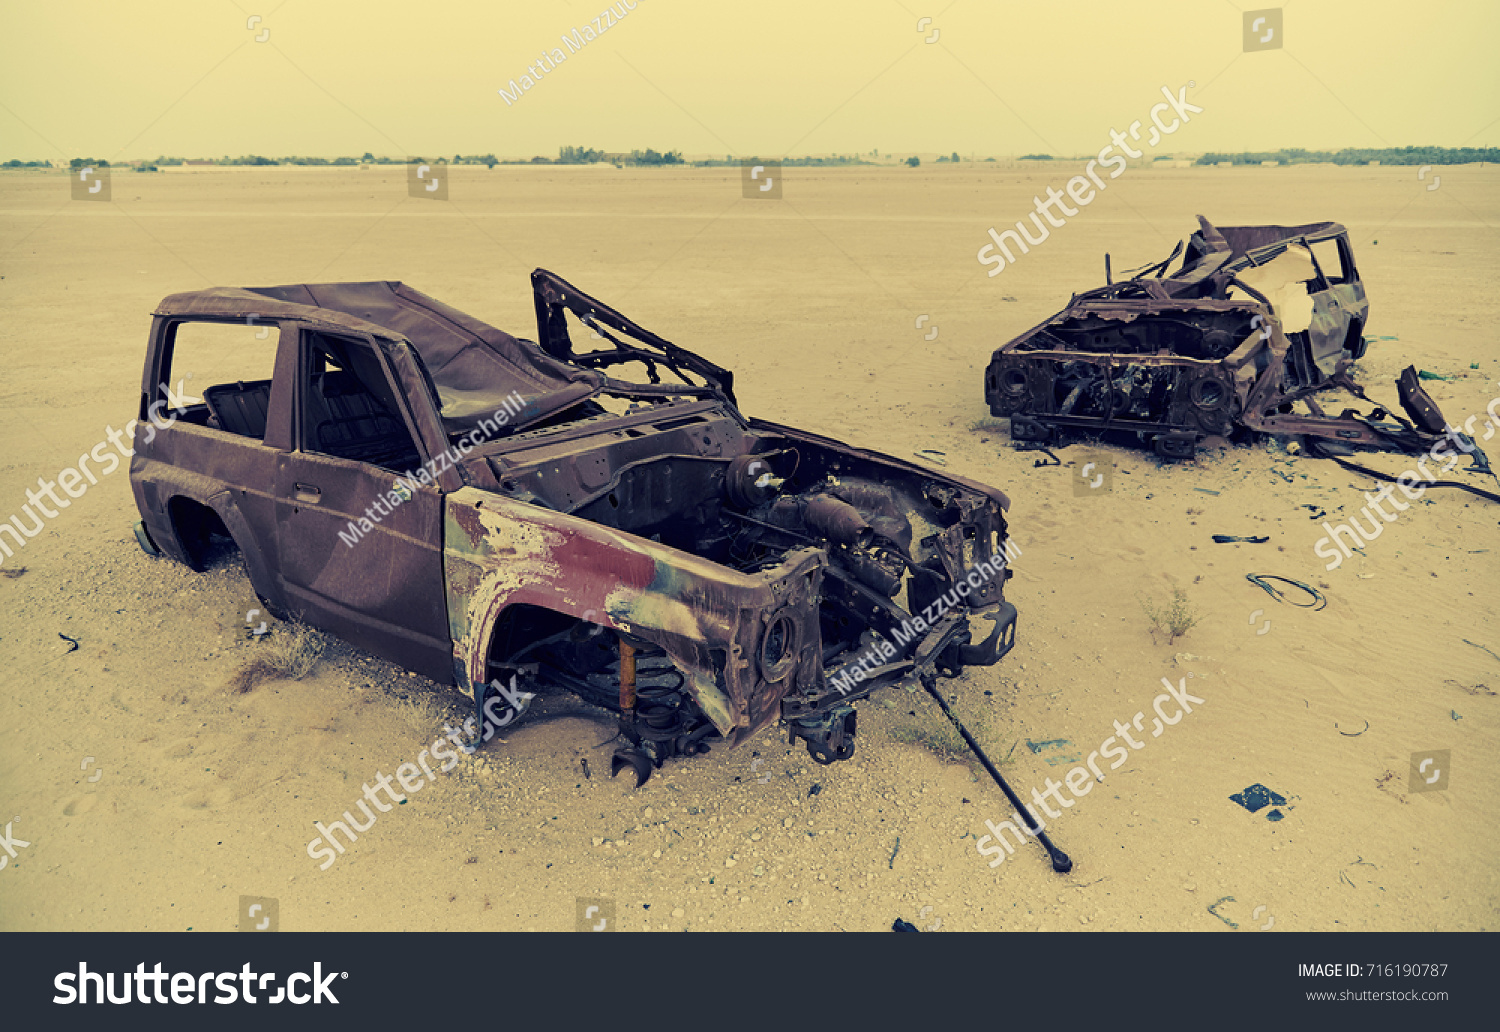 Abandoned Rusty Cars Middle Dubai Desert Stock Photo Edit Now 716190787